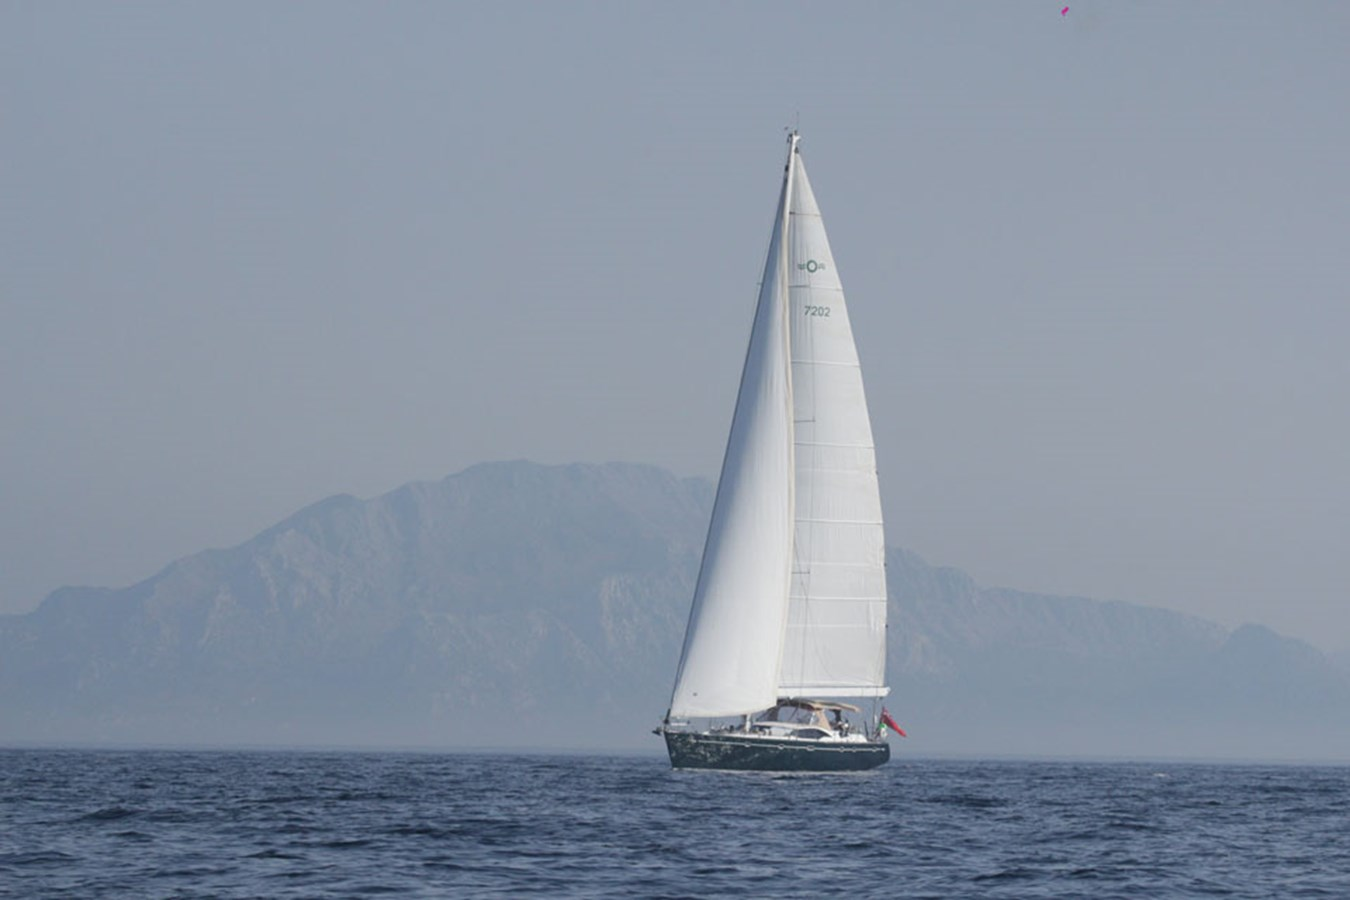 oyster-72-31 2005 OYSTER MARINE LTD Oyster 72 Cruising Sailboat 2707574